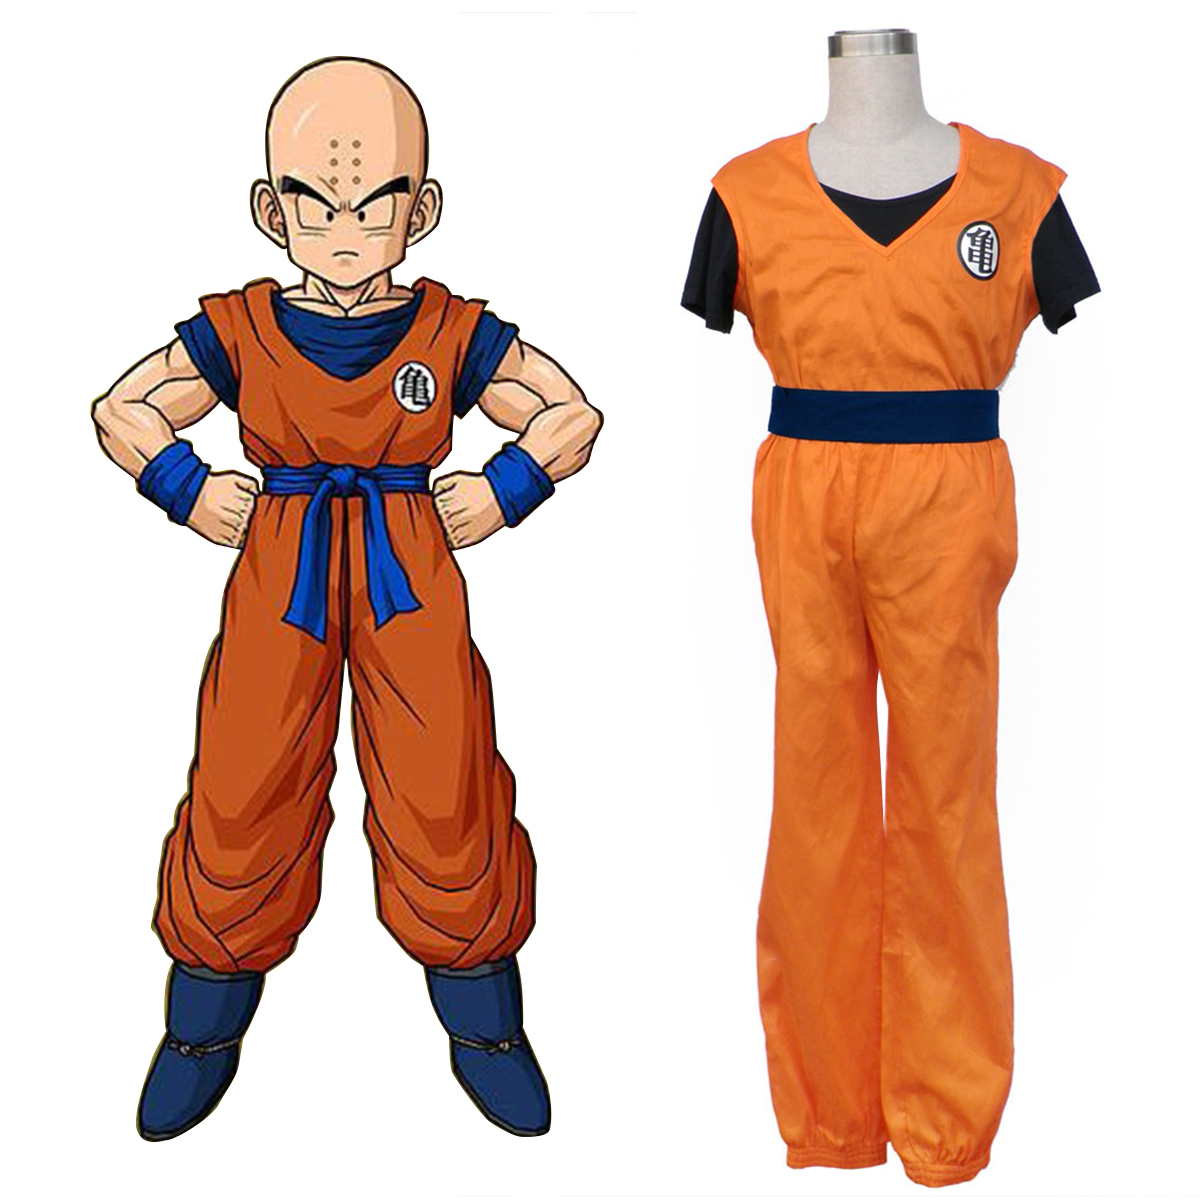 Dragon Ball Krillin Anime Cosplay Costumes Outfit